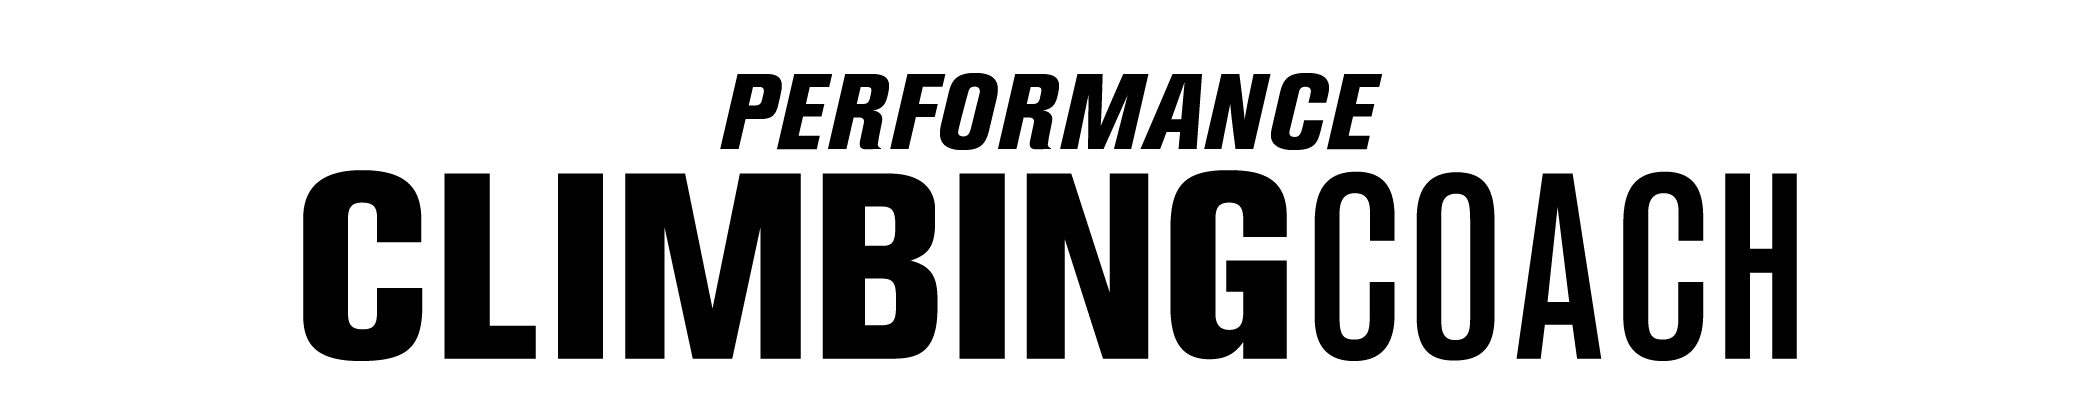 Performance Climbing Coach